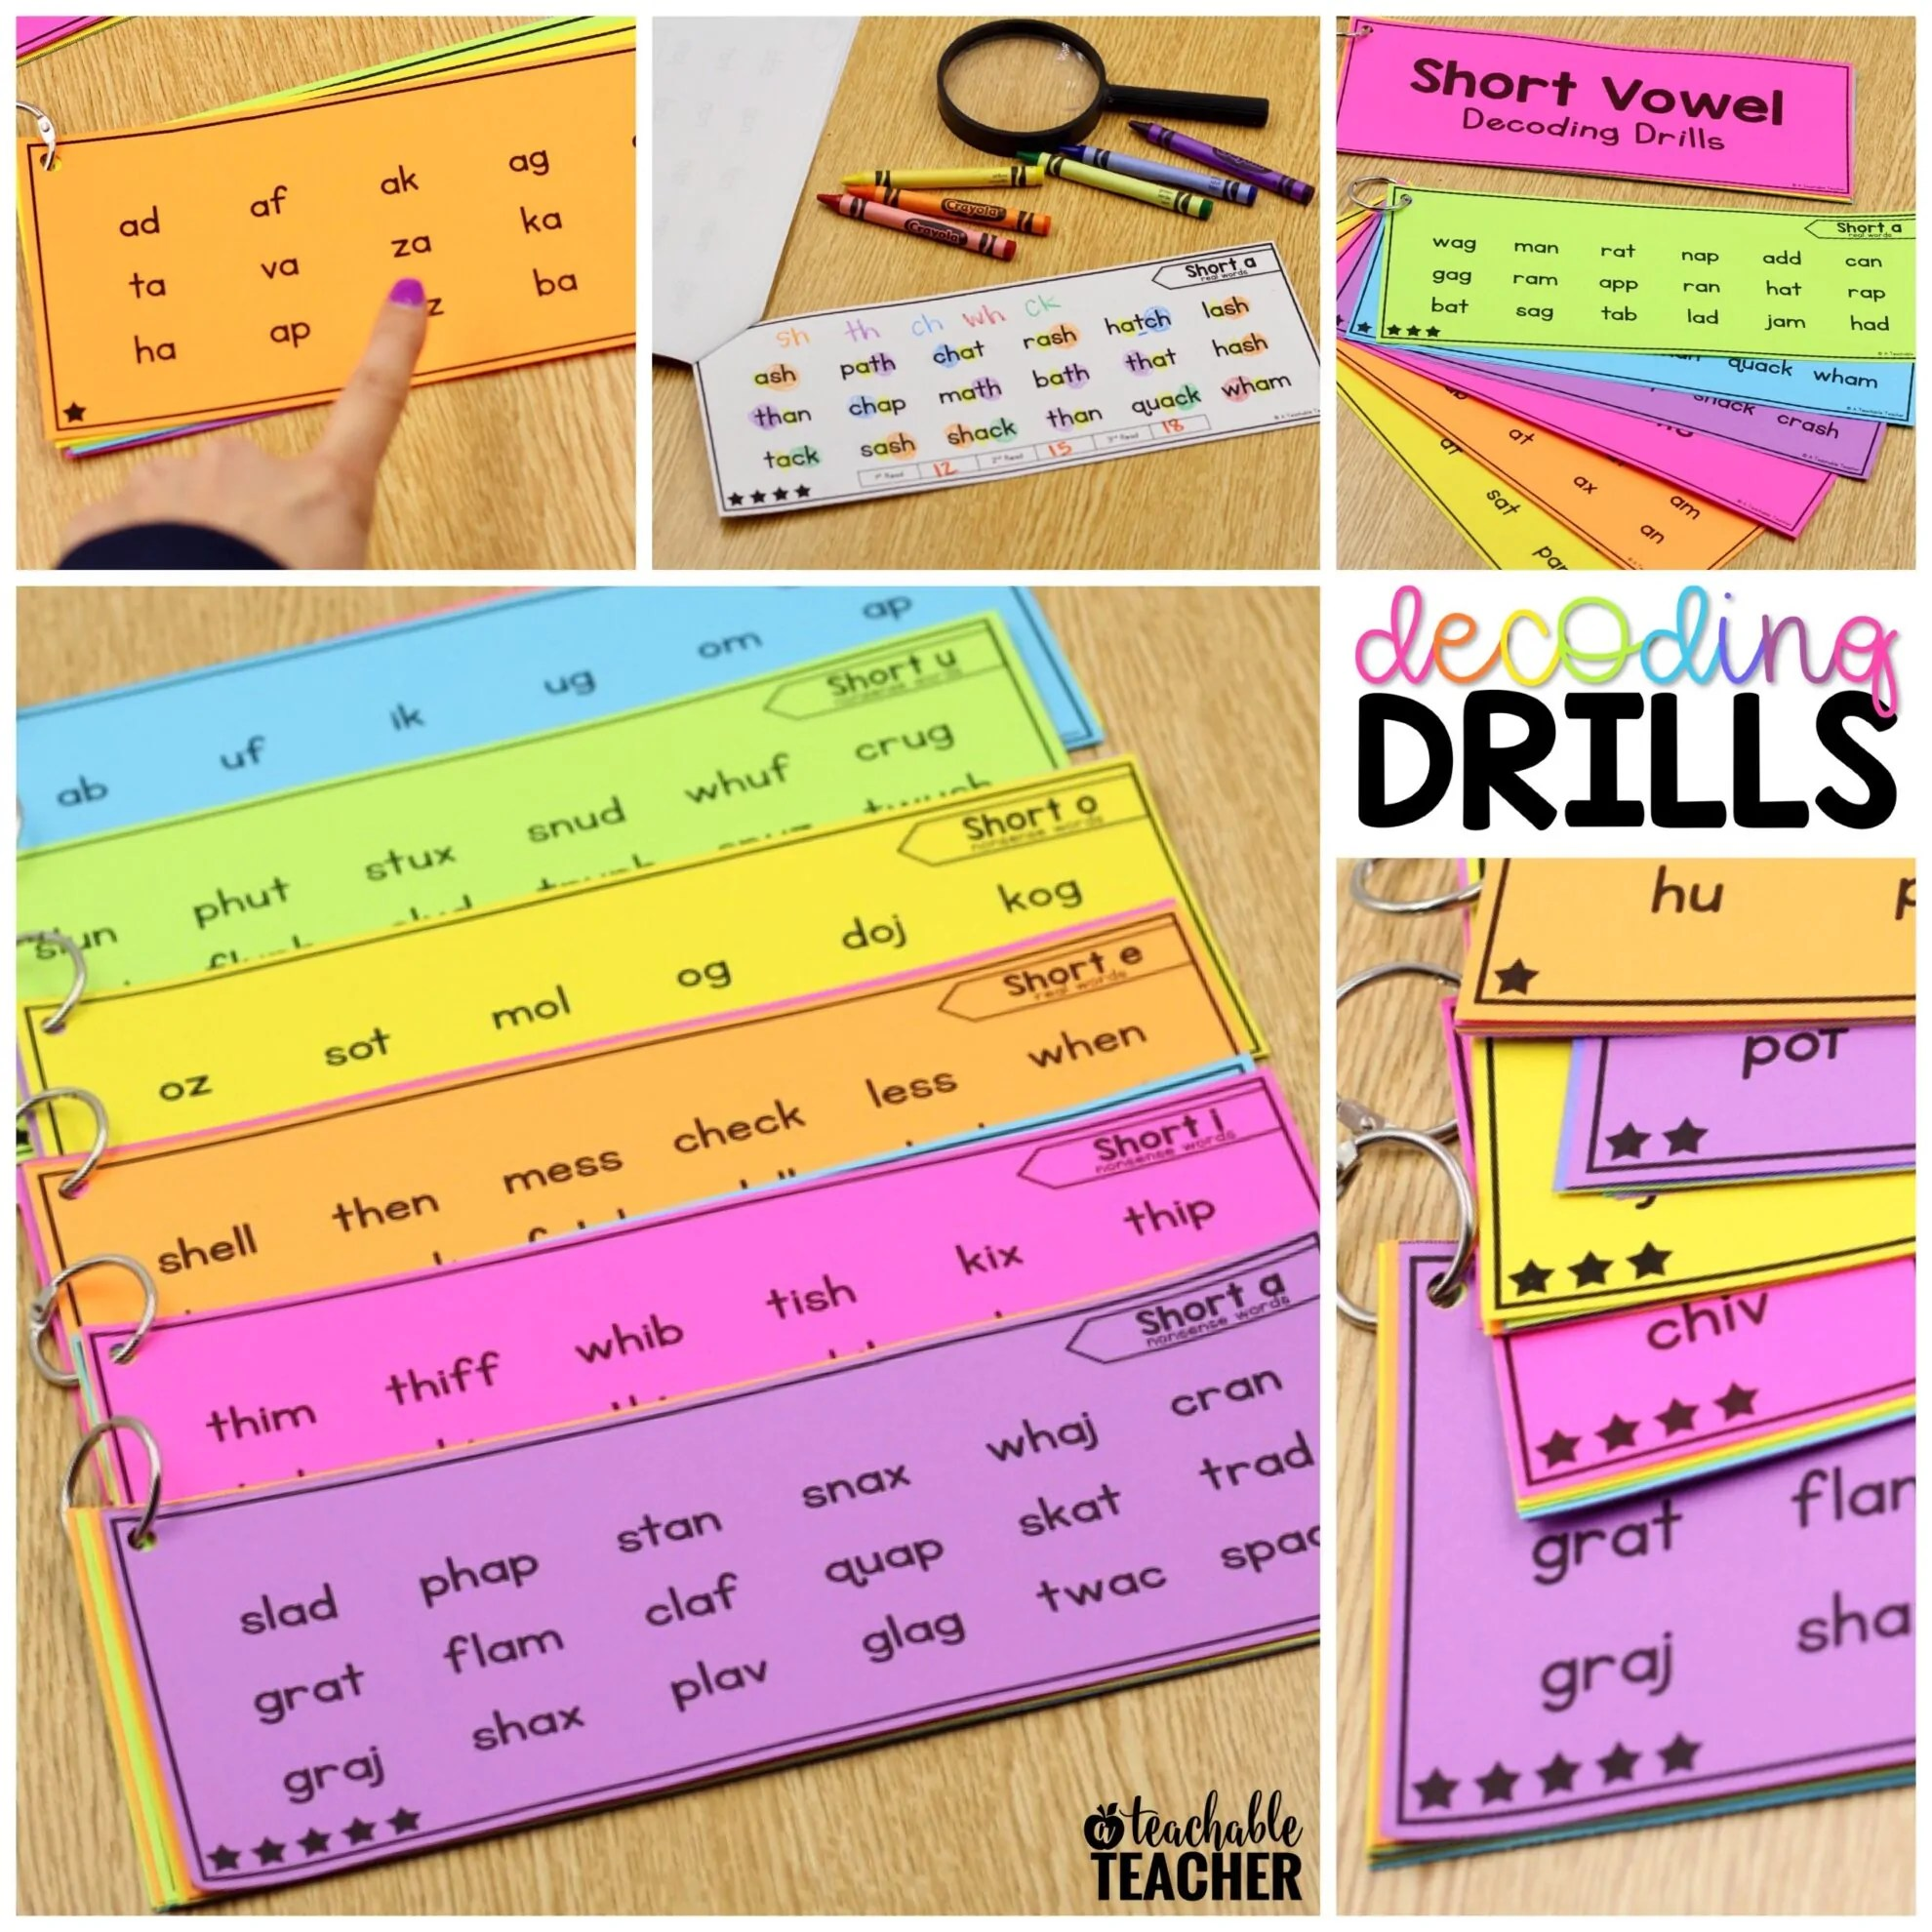 hight resolution of Decoding Drills for Building Phonics Fluency - A Teachable Teacher